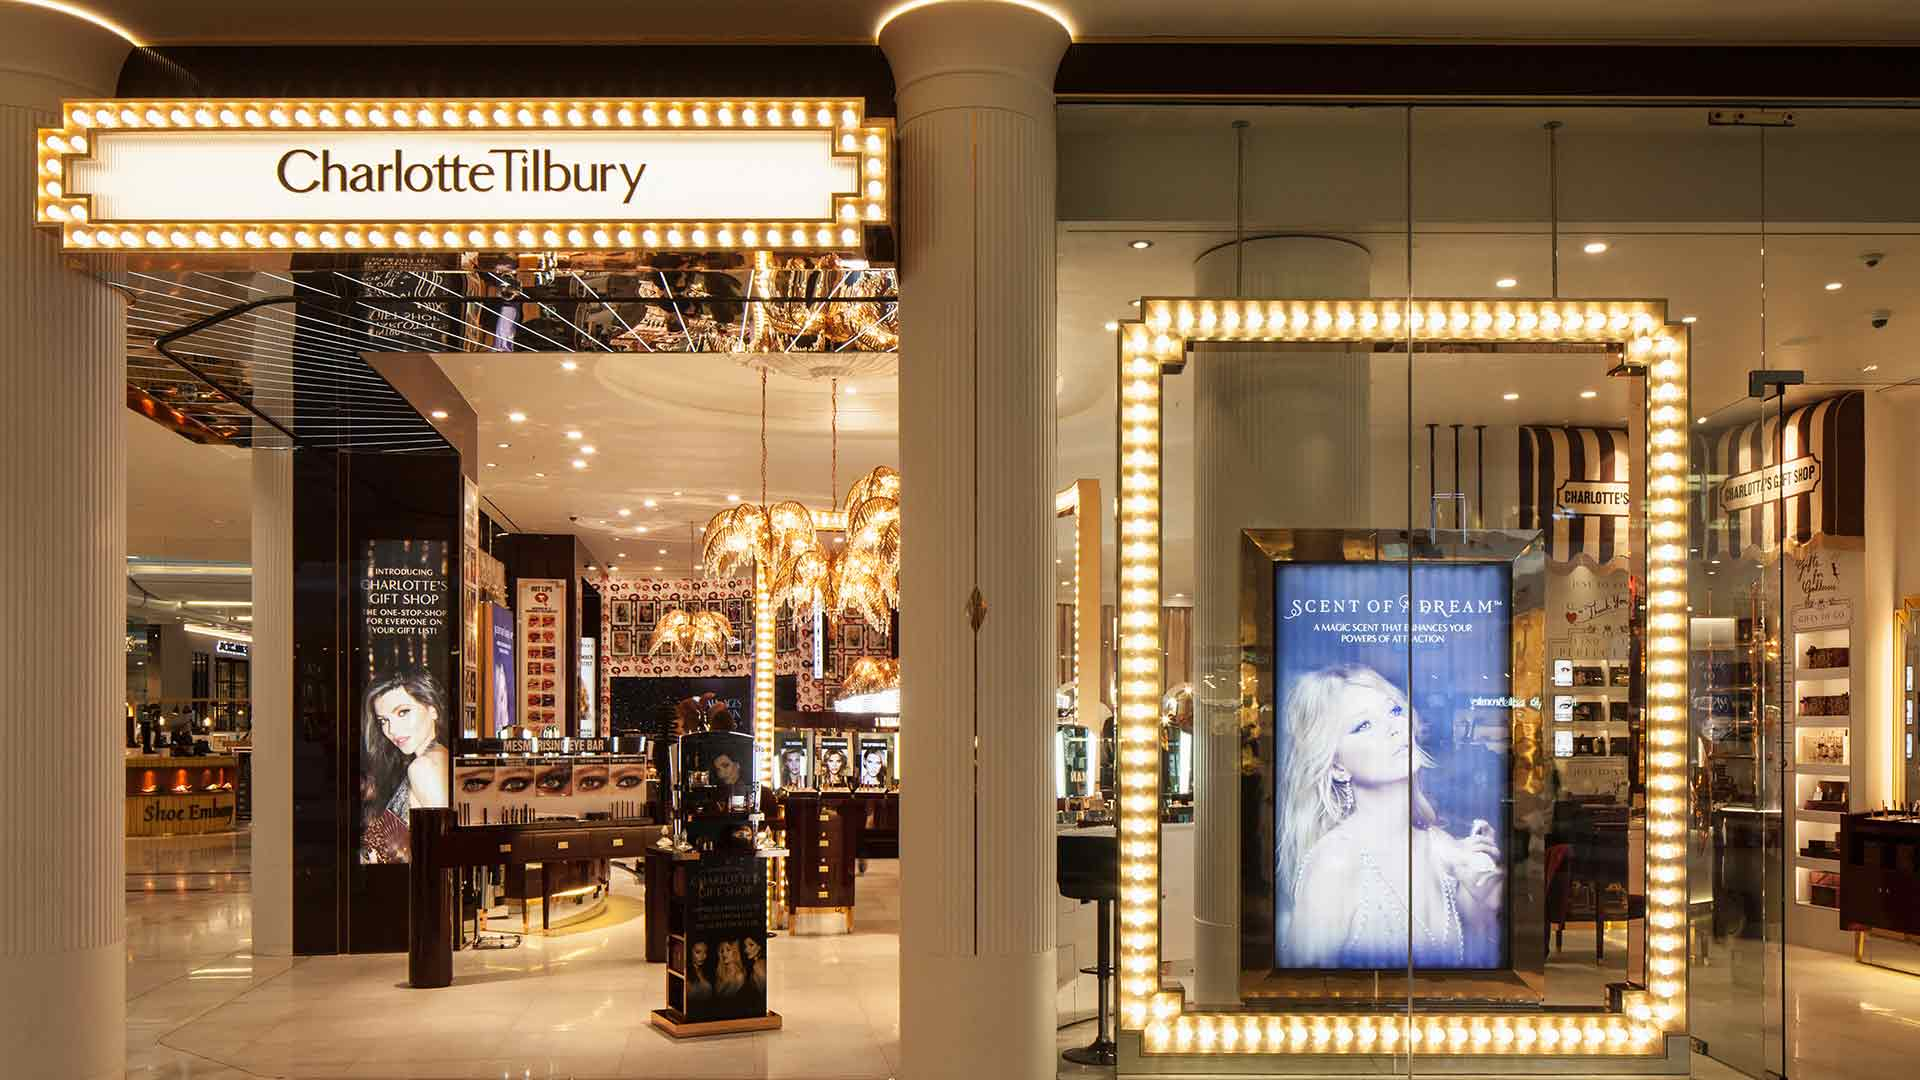 Architectural lighting scheme facade beauty store consultants nulty